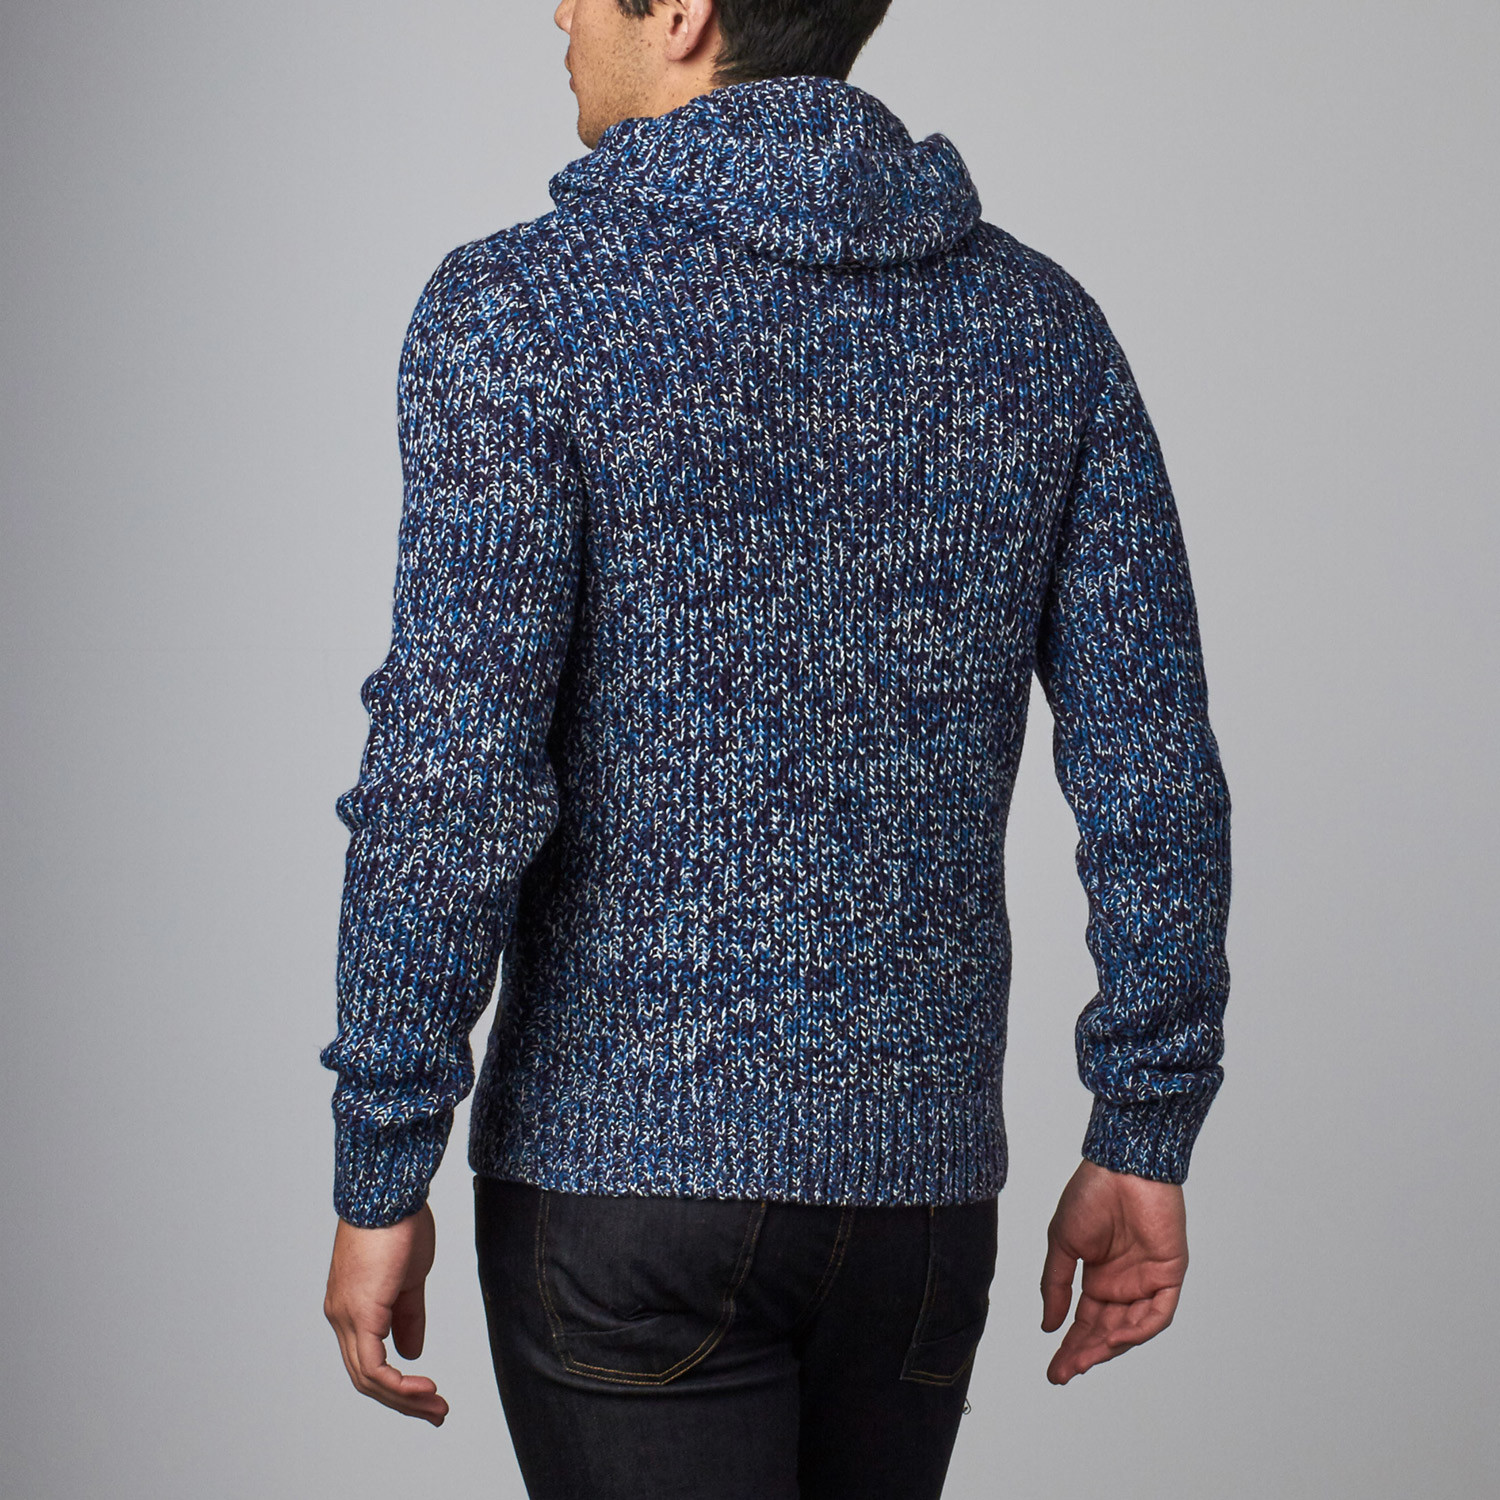 Cable Knit Sweater Hoodie // Blue (S) - Projek Raw - Touch of Modern